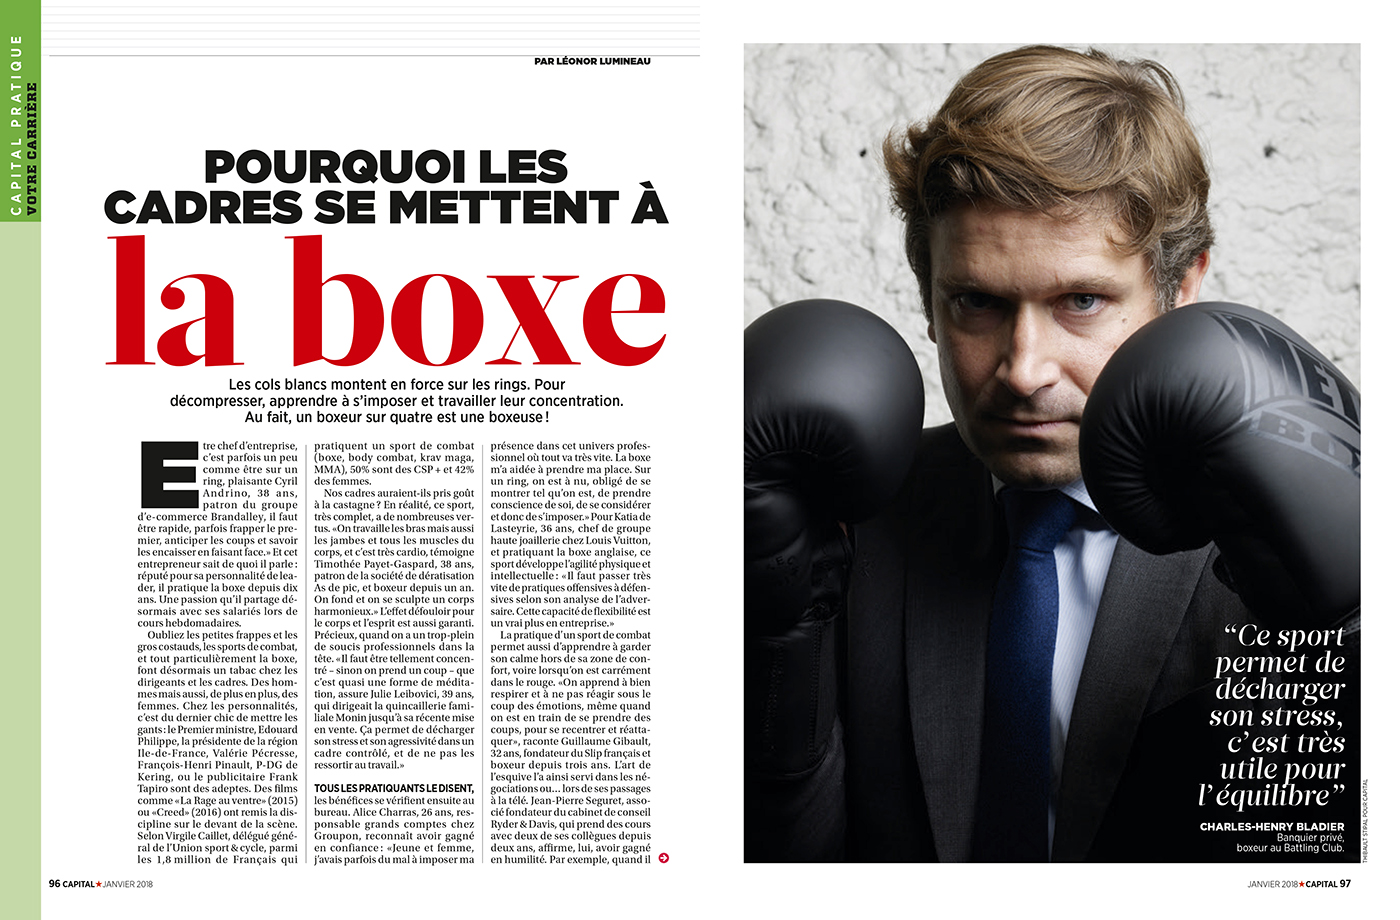 Thibault Stipal - Photographe - Capital magazine - Boxe  - 1